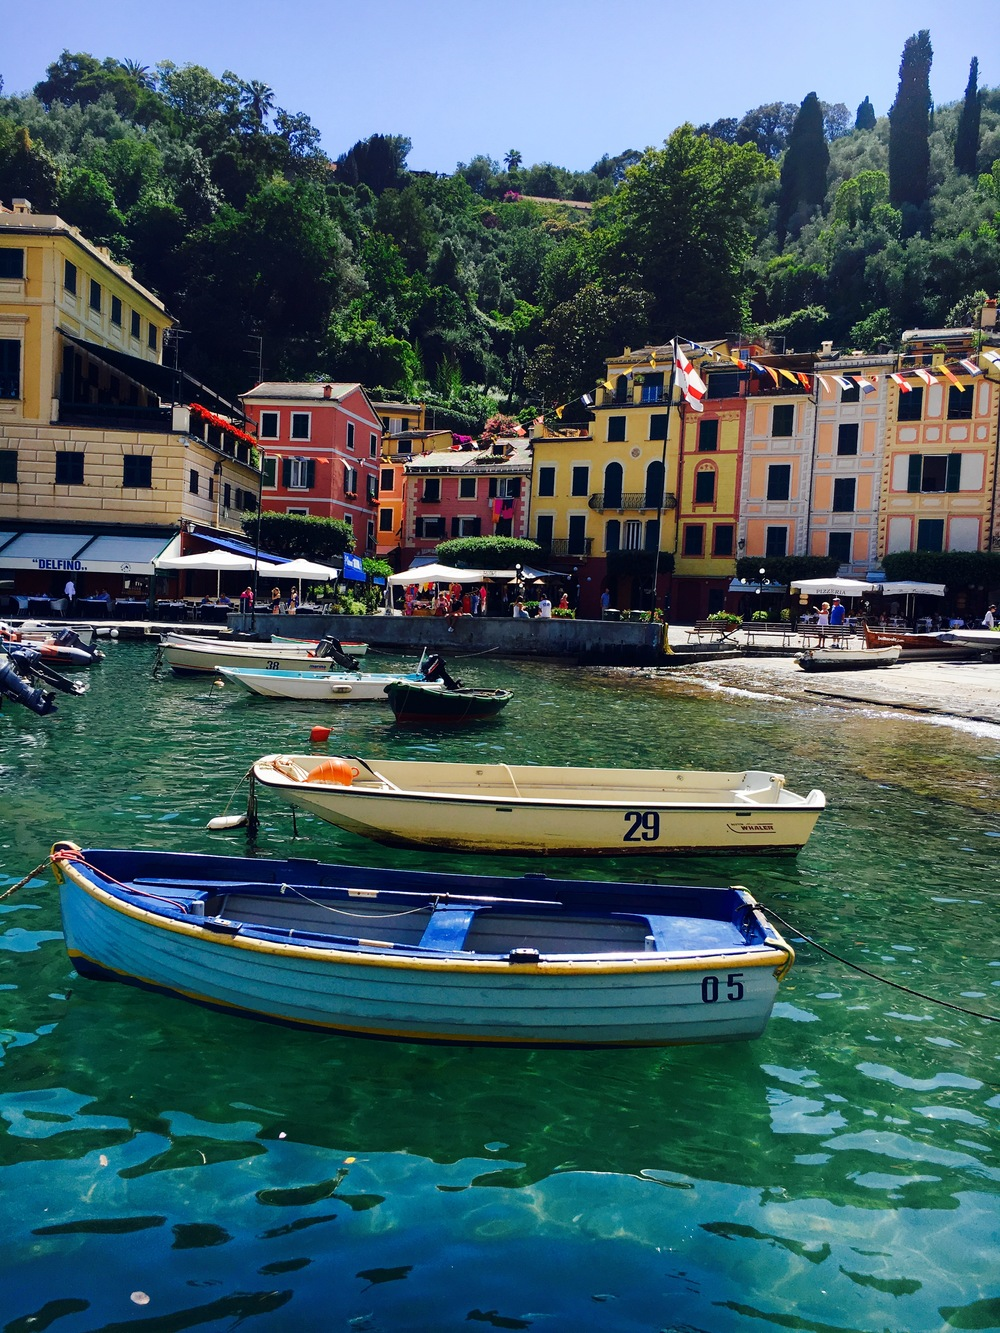 small boats in harbor of Portofino, Liguria, Italy